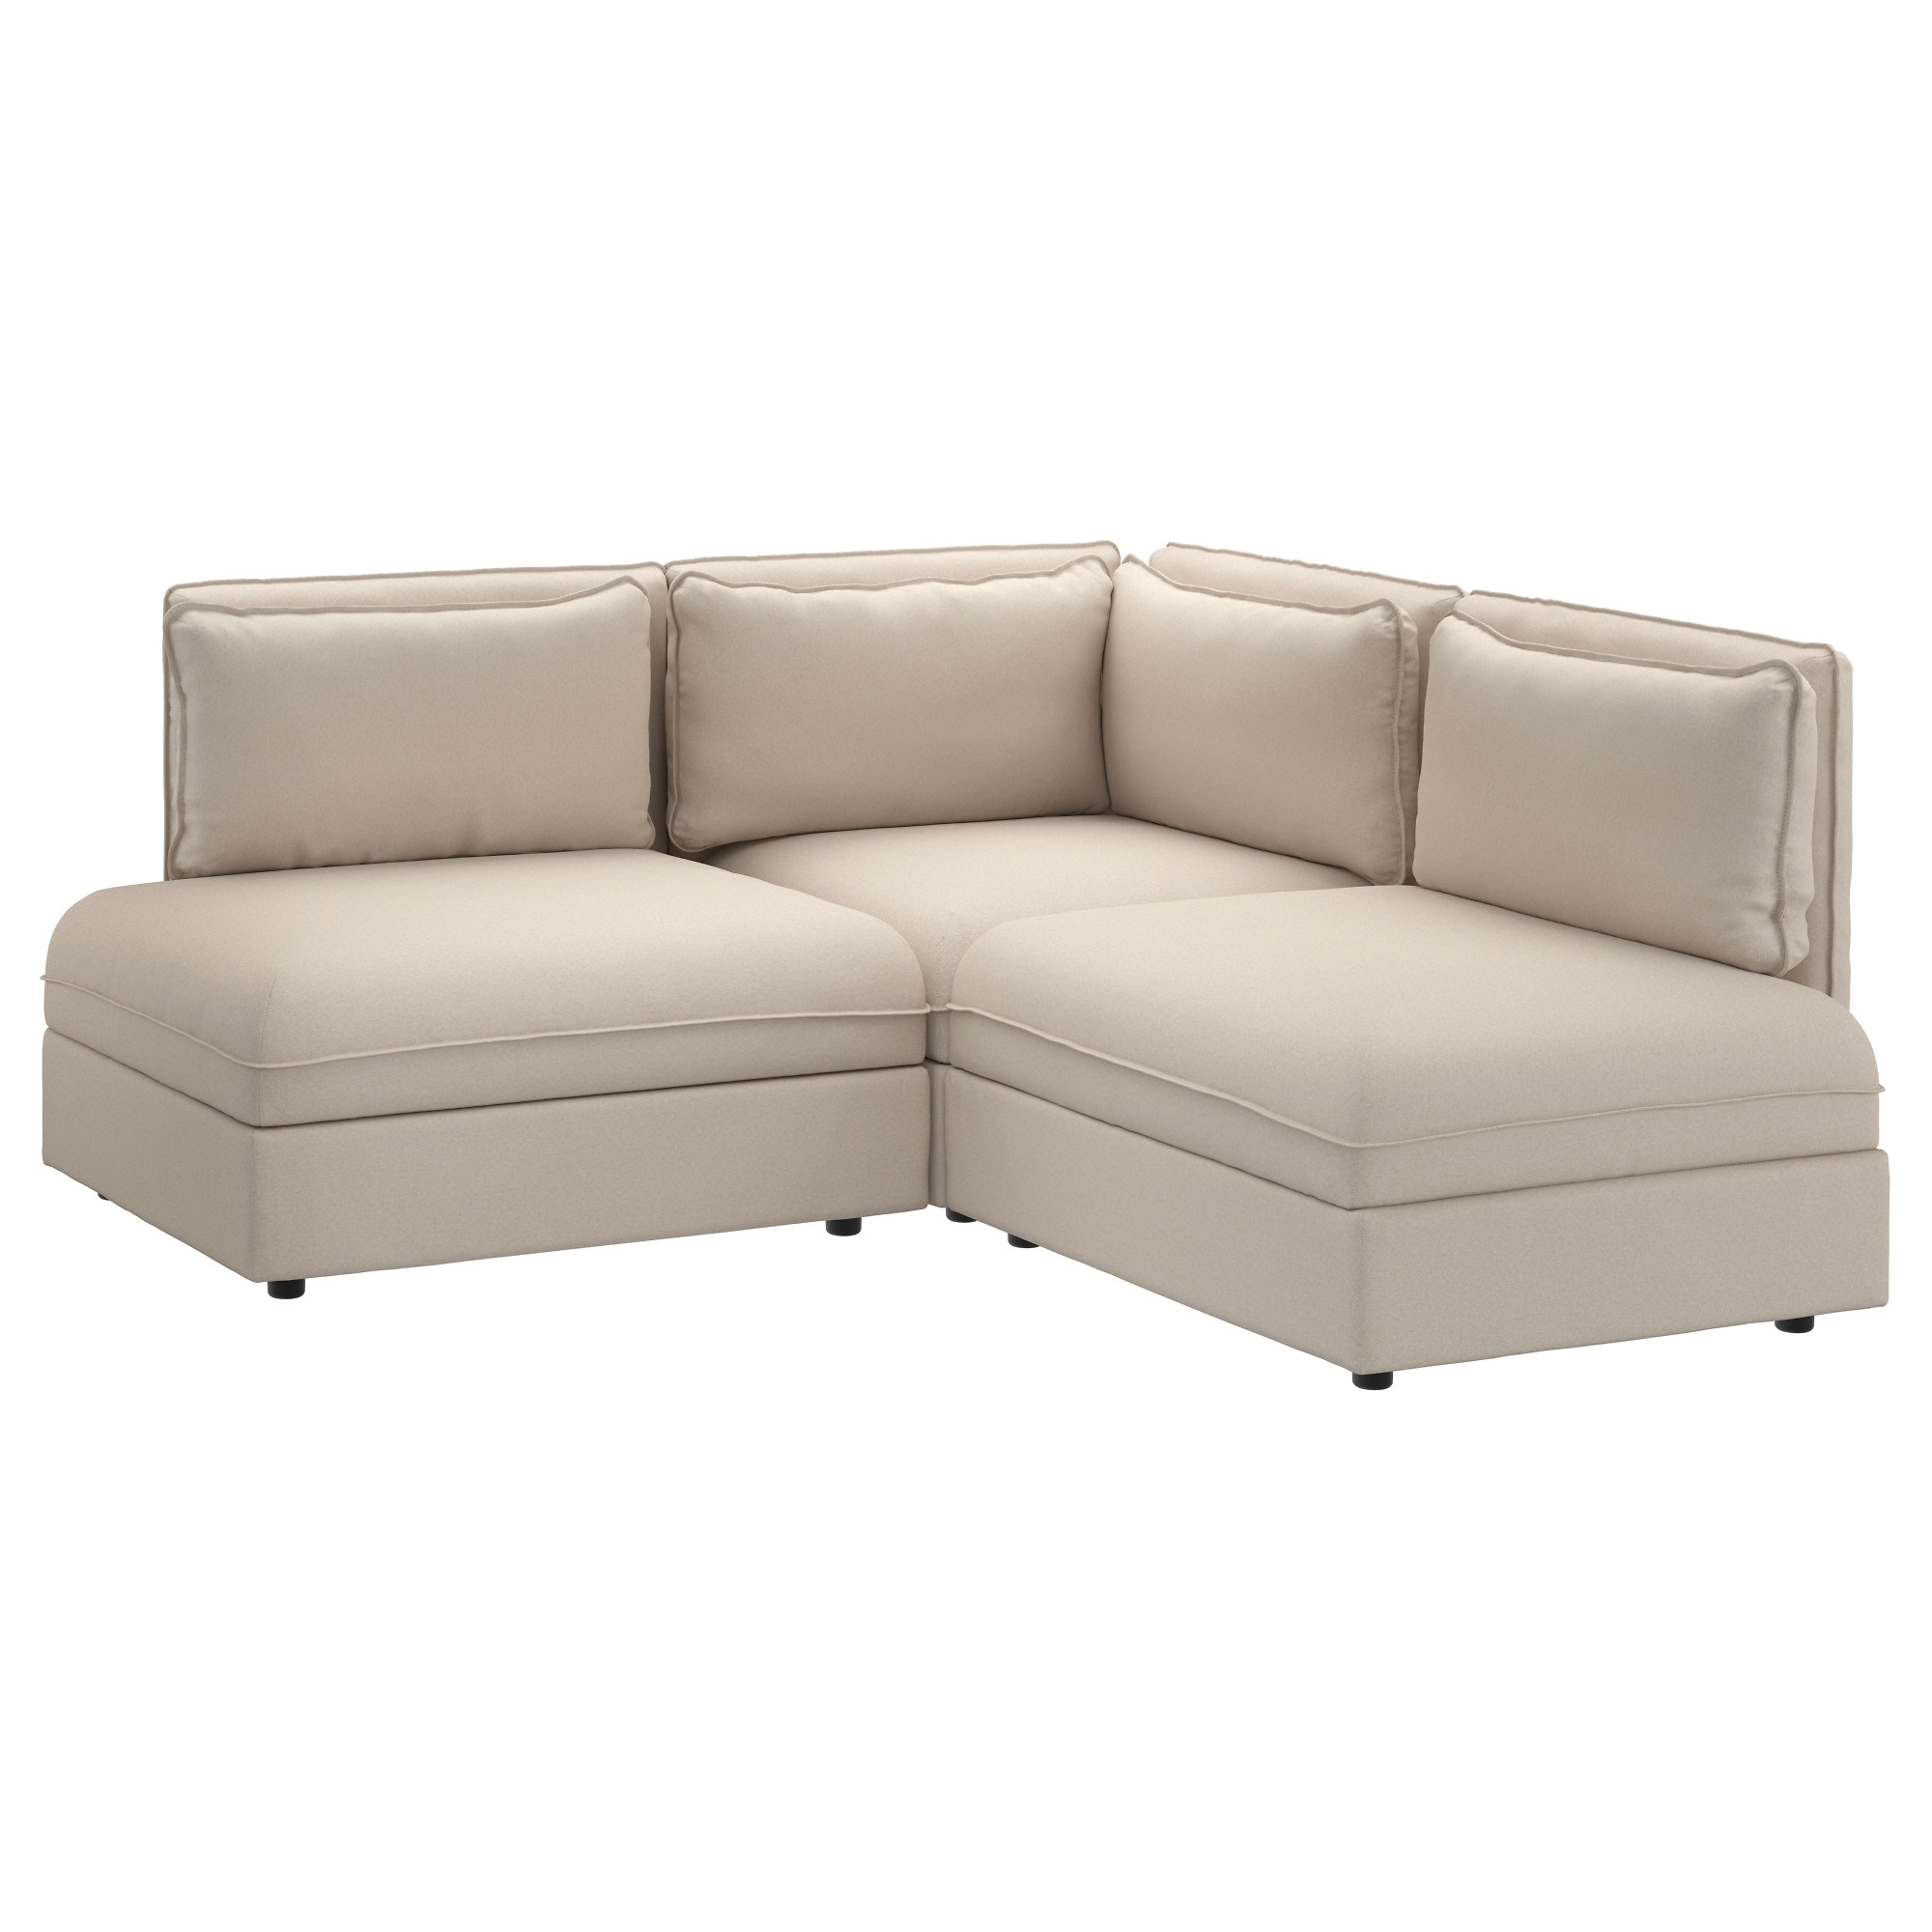 Gallery Of 2 Seat Sectional Sofas View